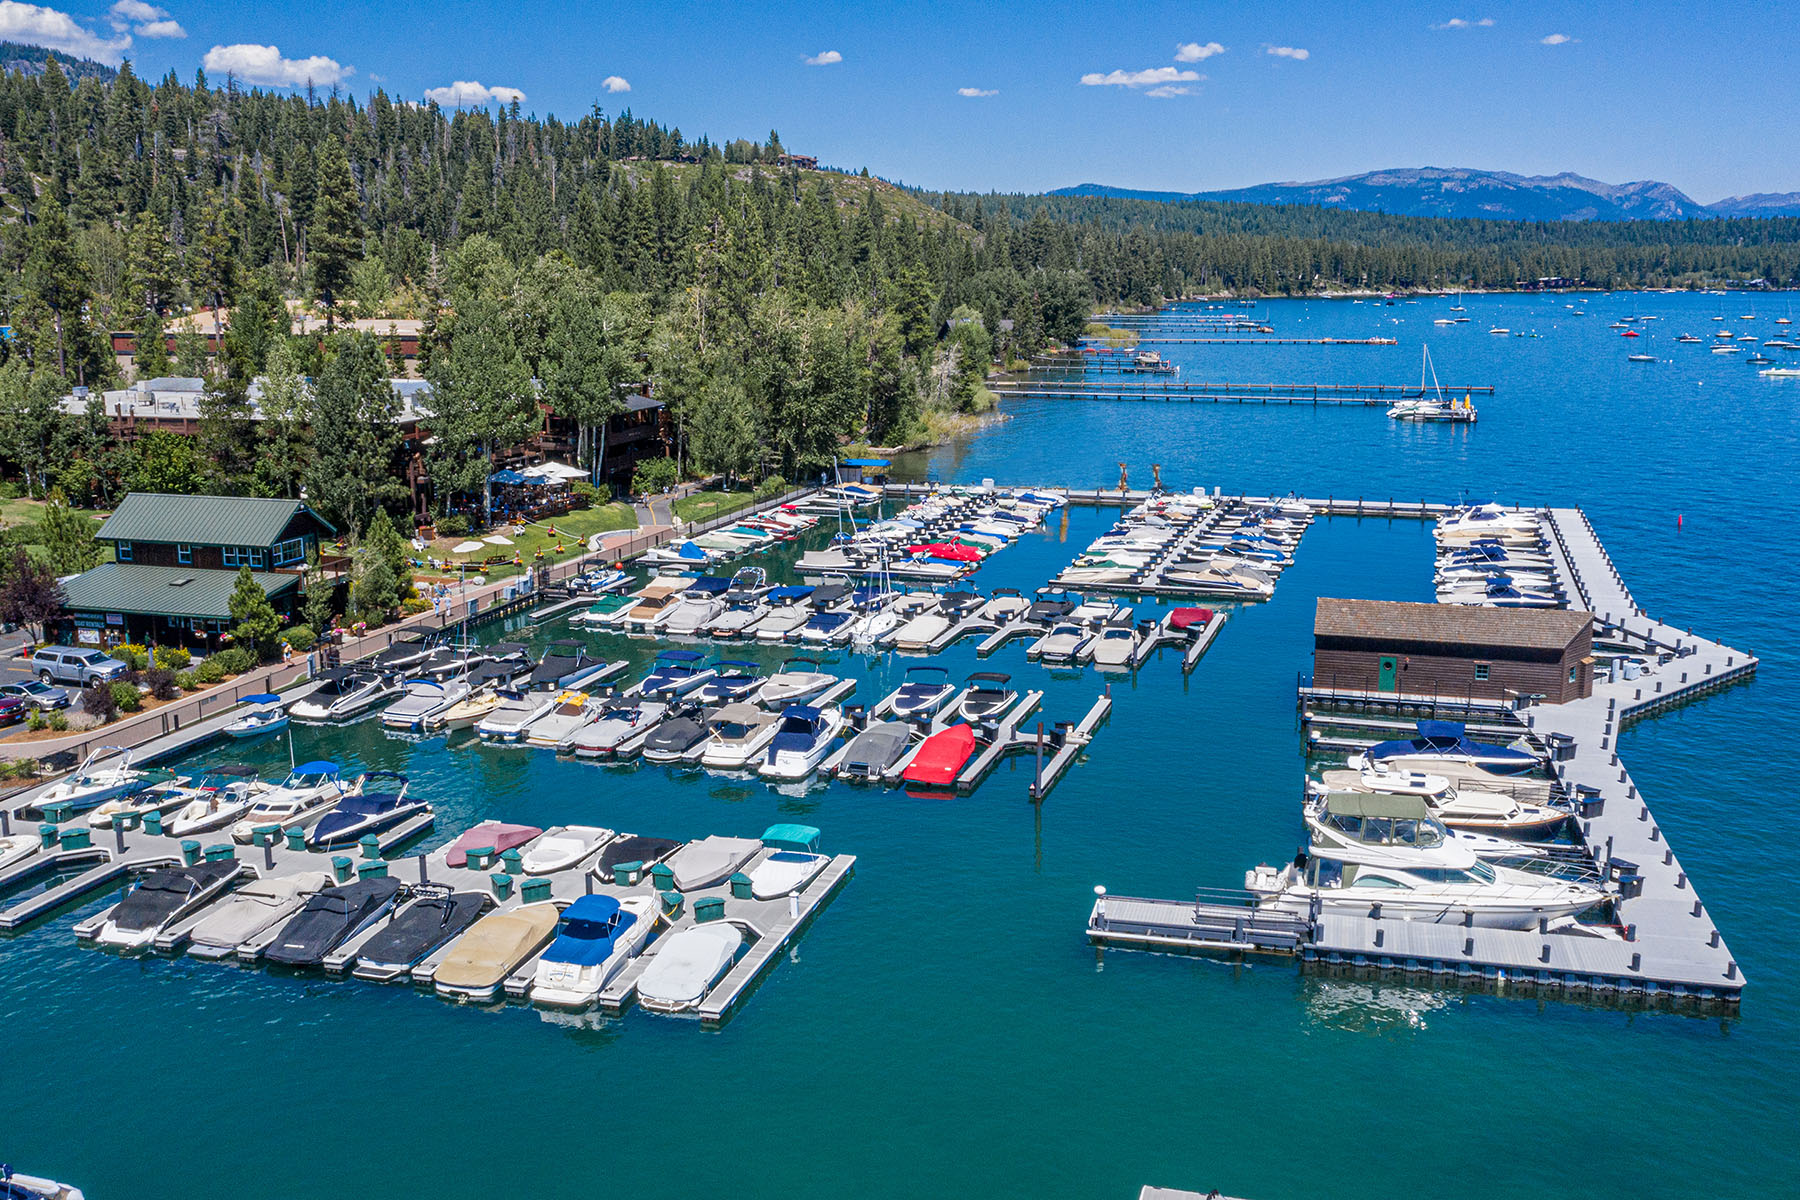 for Sale at 700 N. Lake Blvd. #F-25, Tahoe City, CA 96145 700 N. Lake Blvd. #F-25 Tahoe City, California 96145 United States